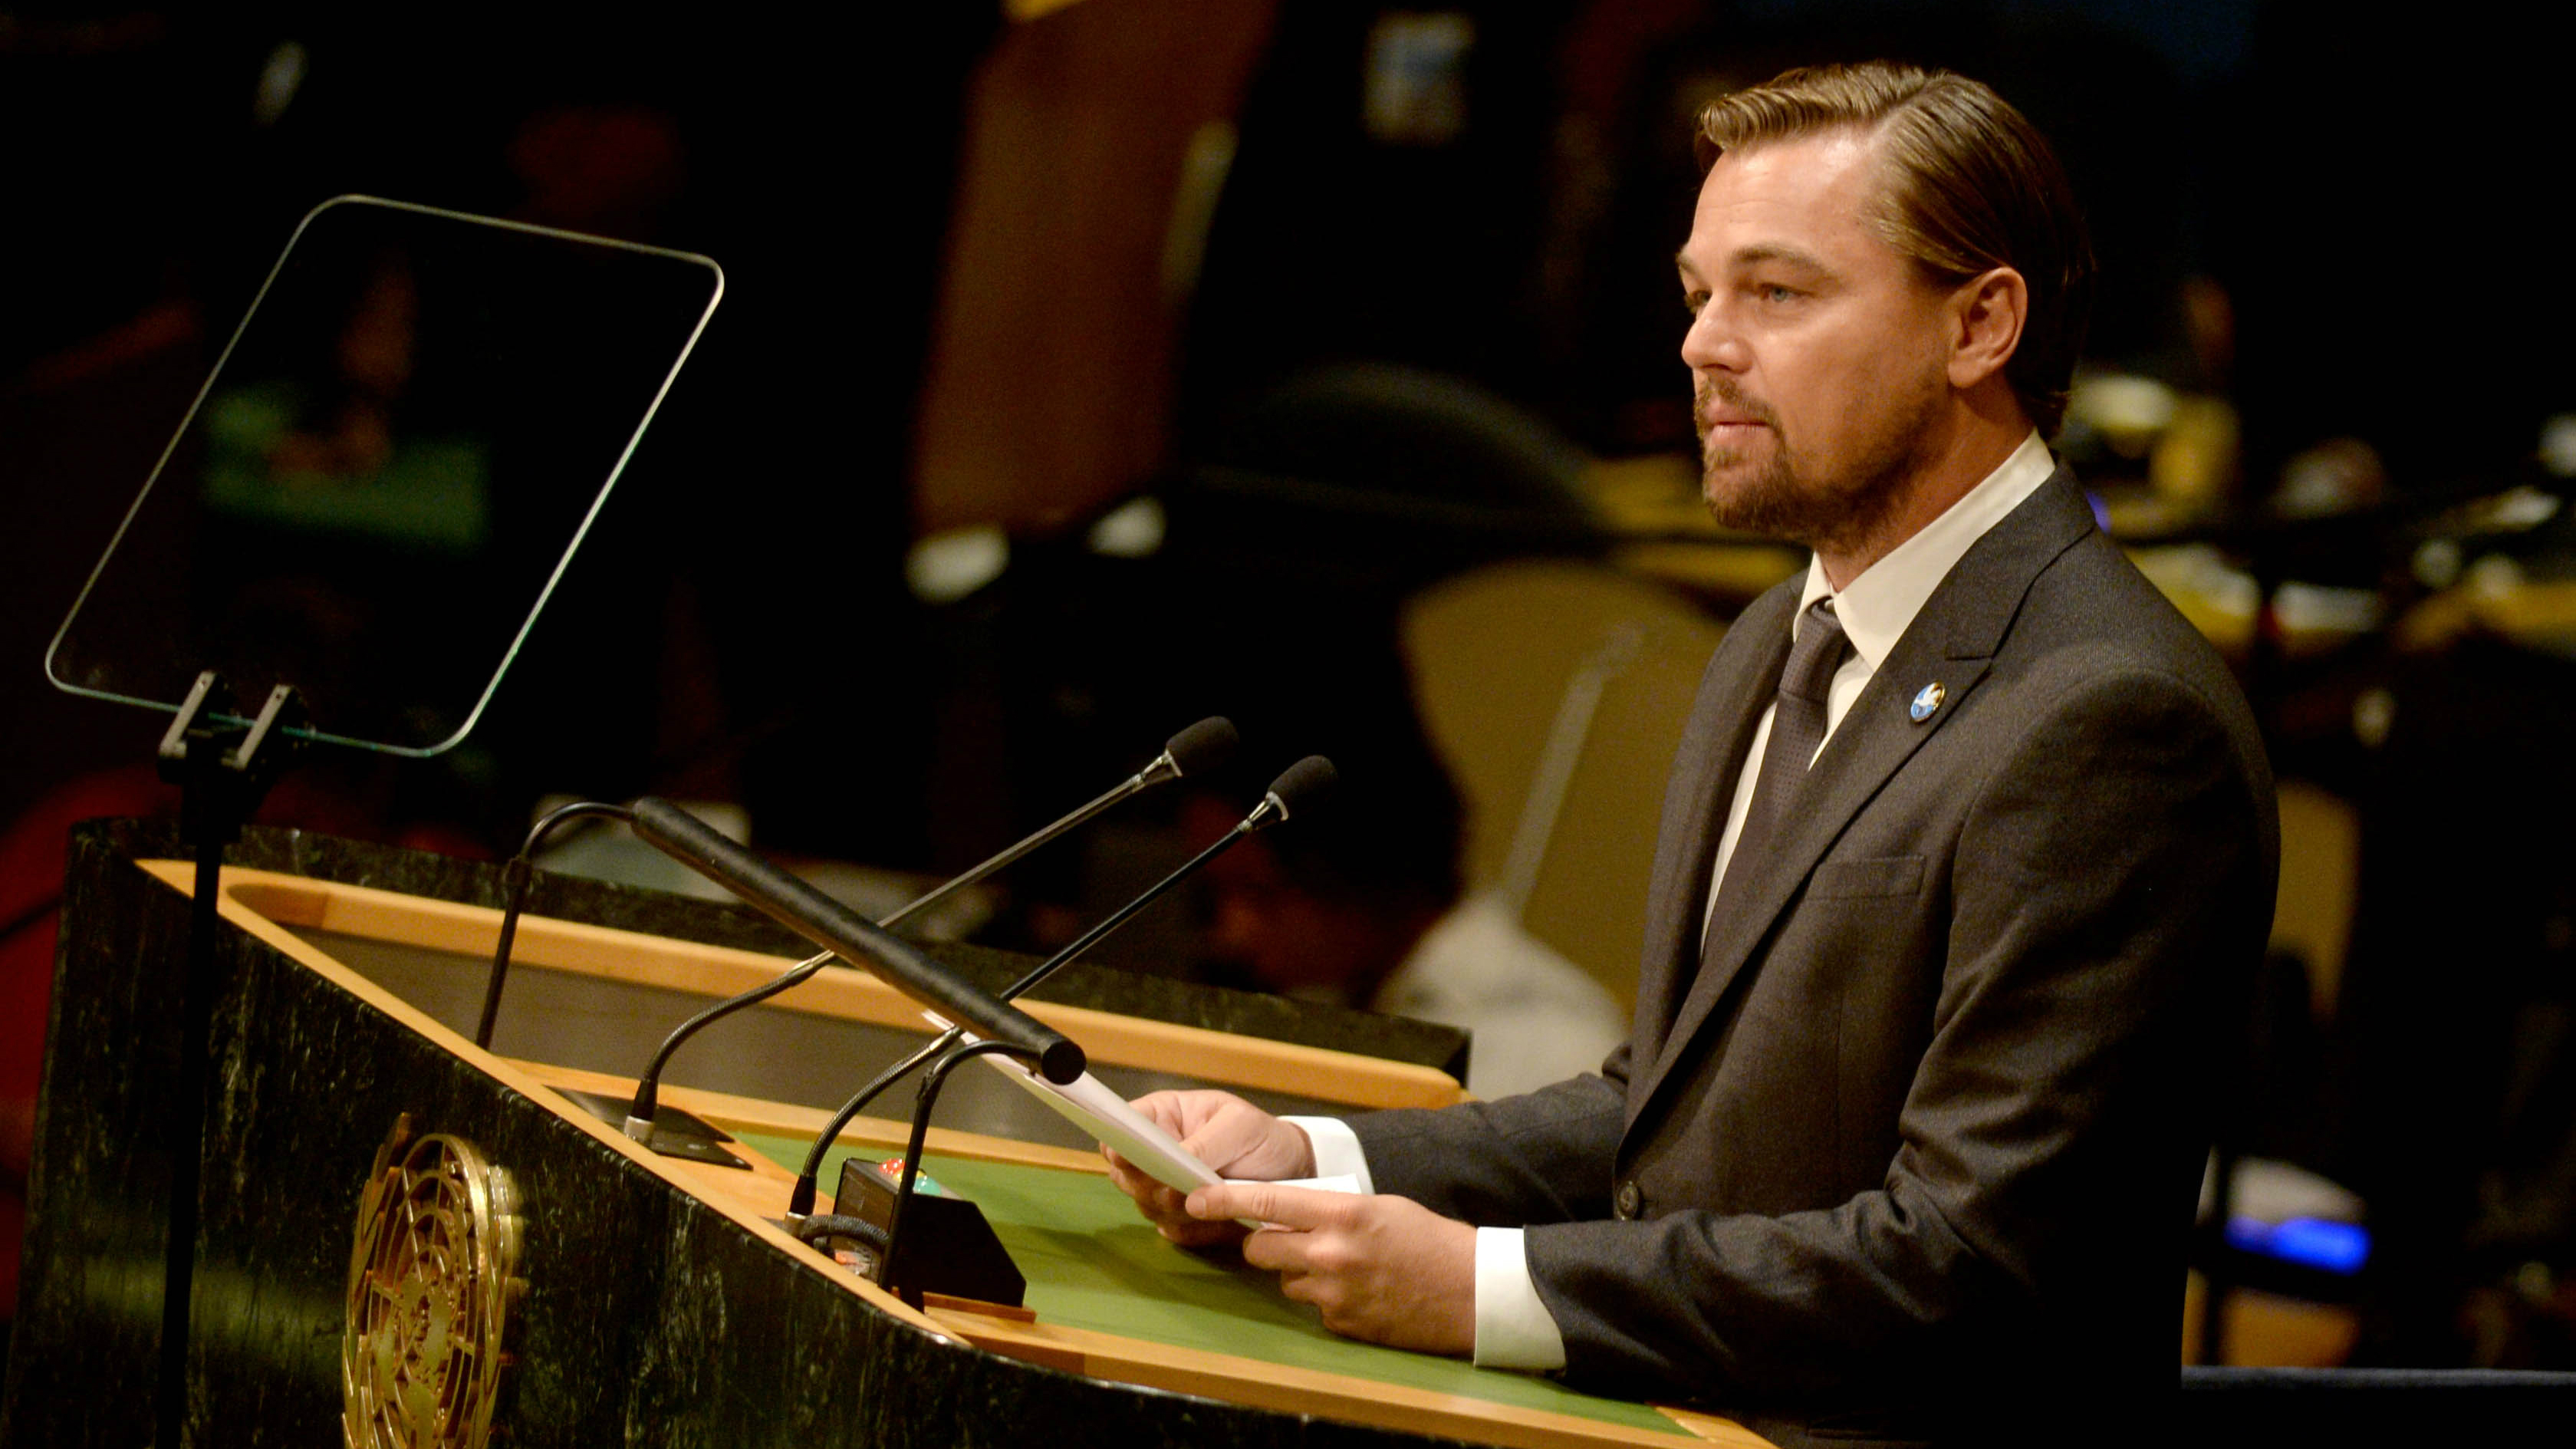 Leonardo DiCaprio speaking at a lectern